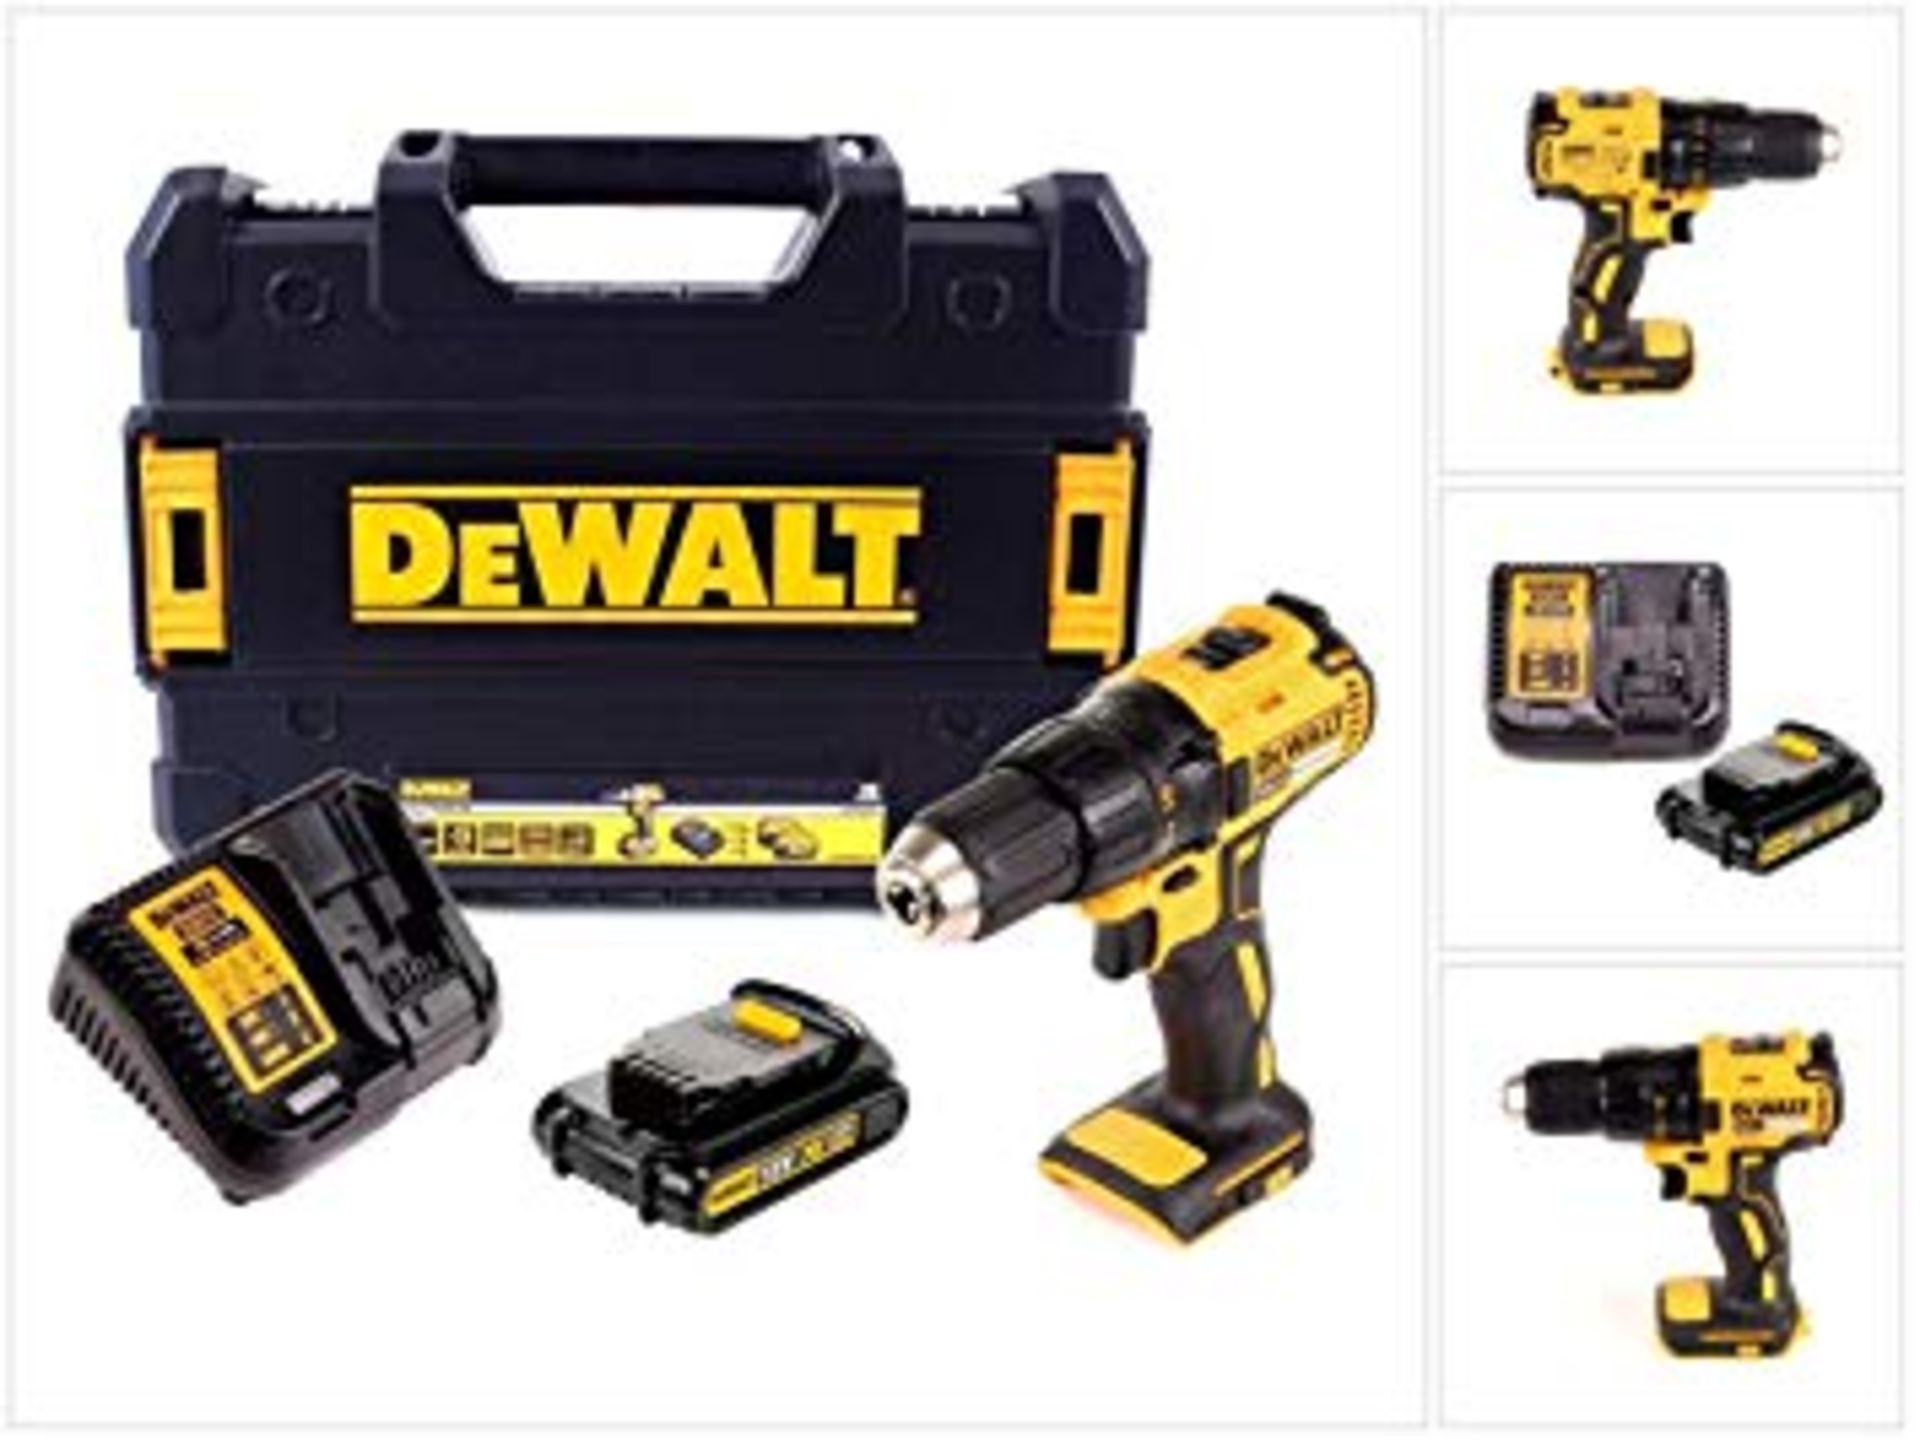 Lot 17006 - V Brand New DeWalt 18v Brushless Drill Driver With Battery And Charger In DeWalt Plastic Case